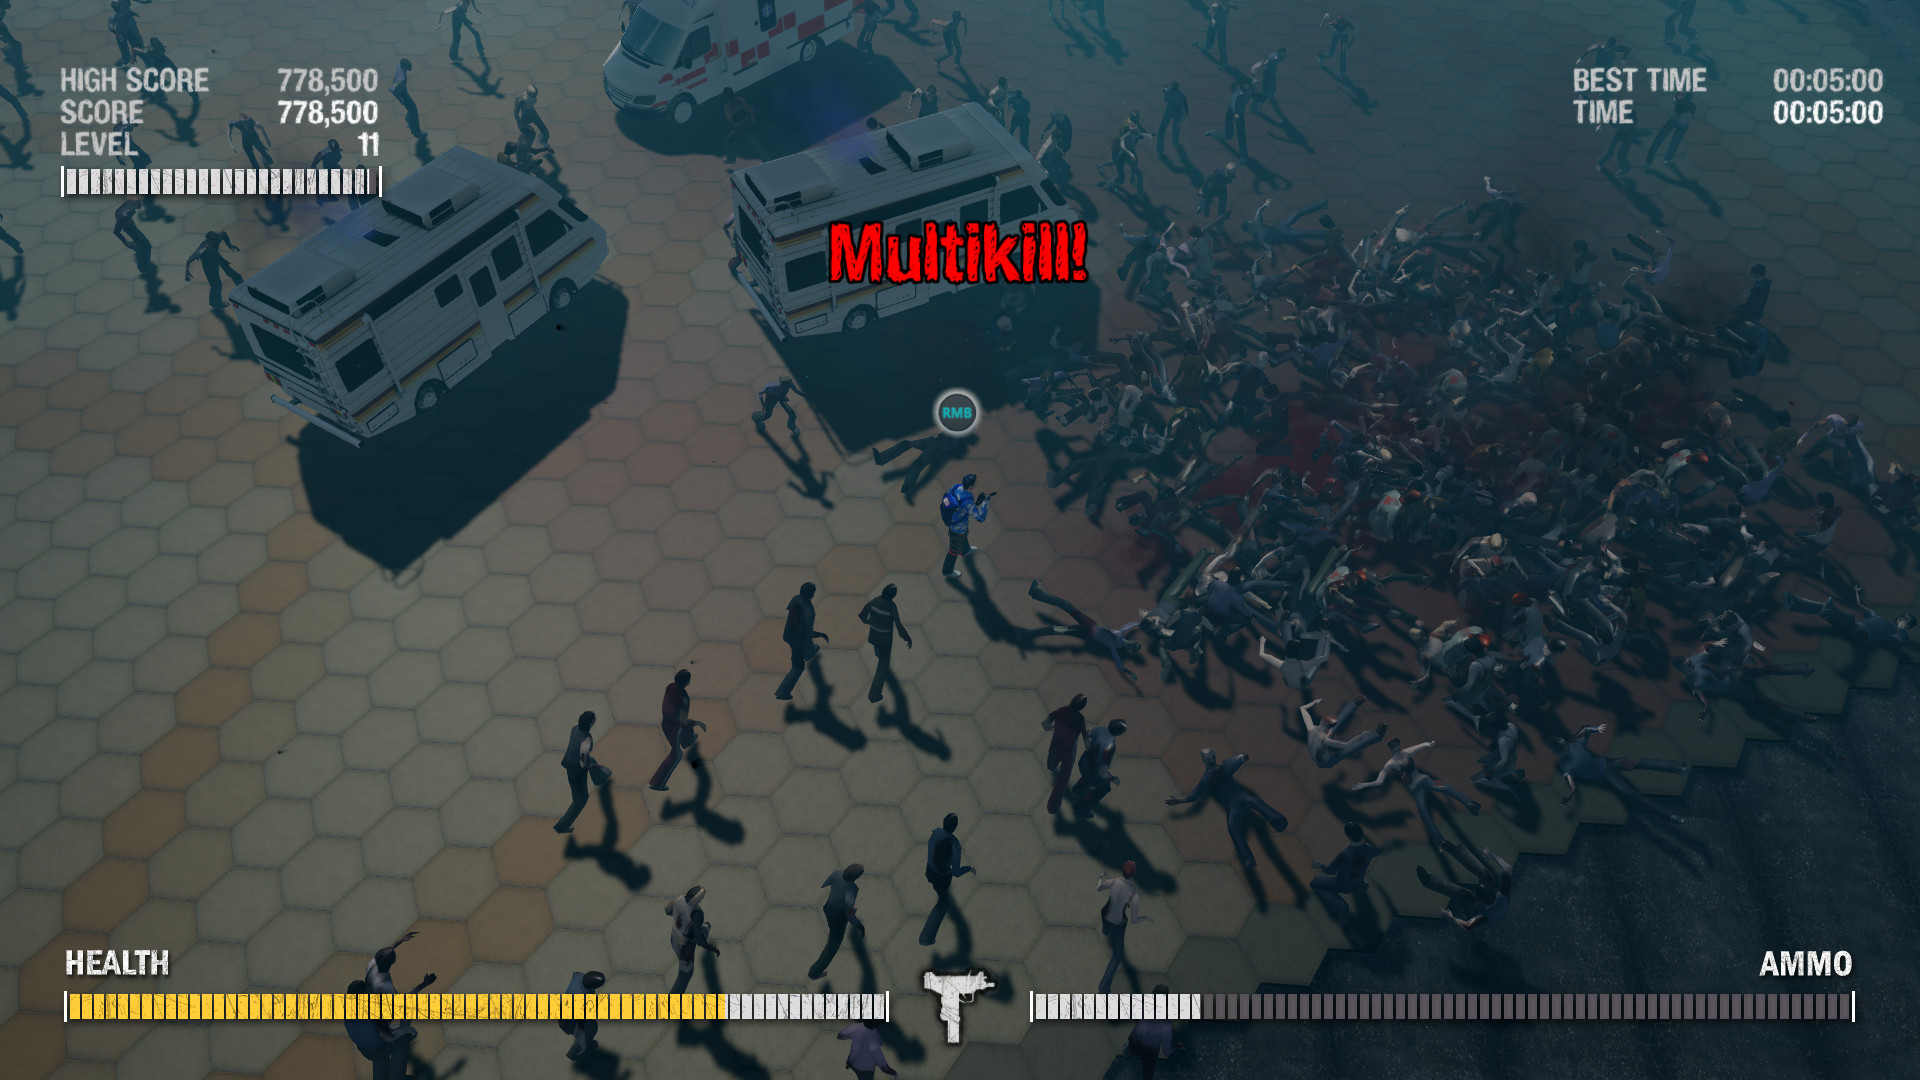 KILLALLZOMBIES Download For Free